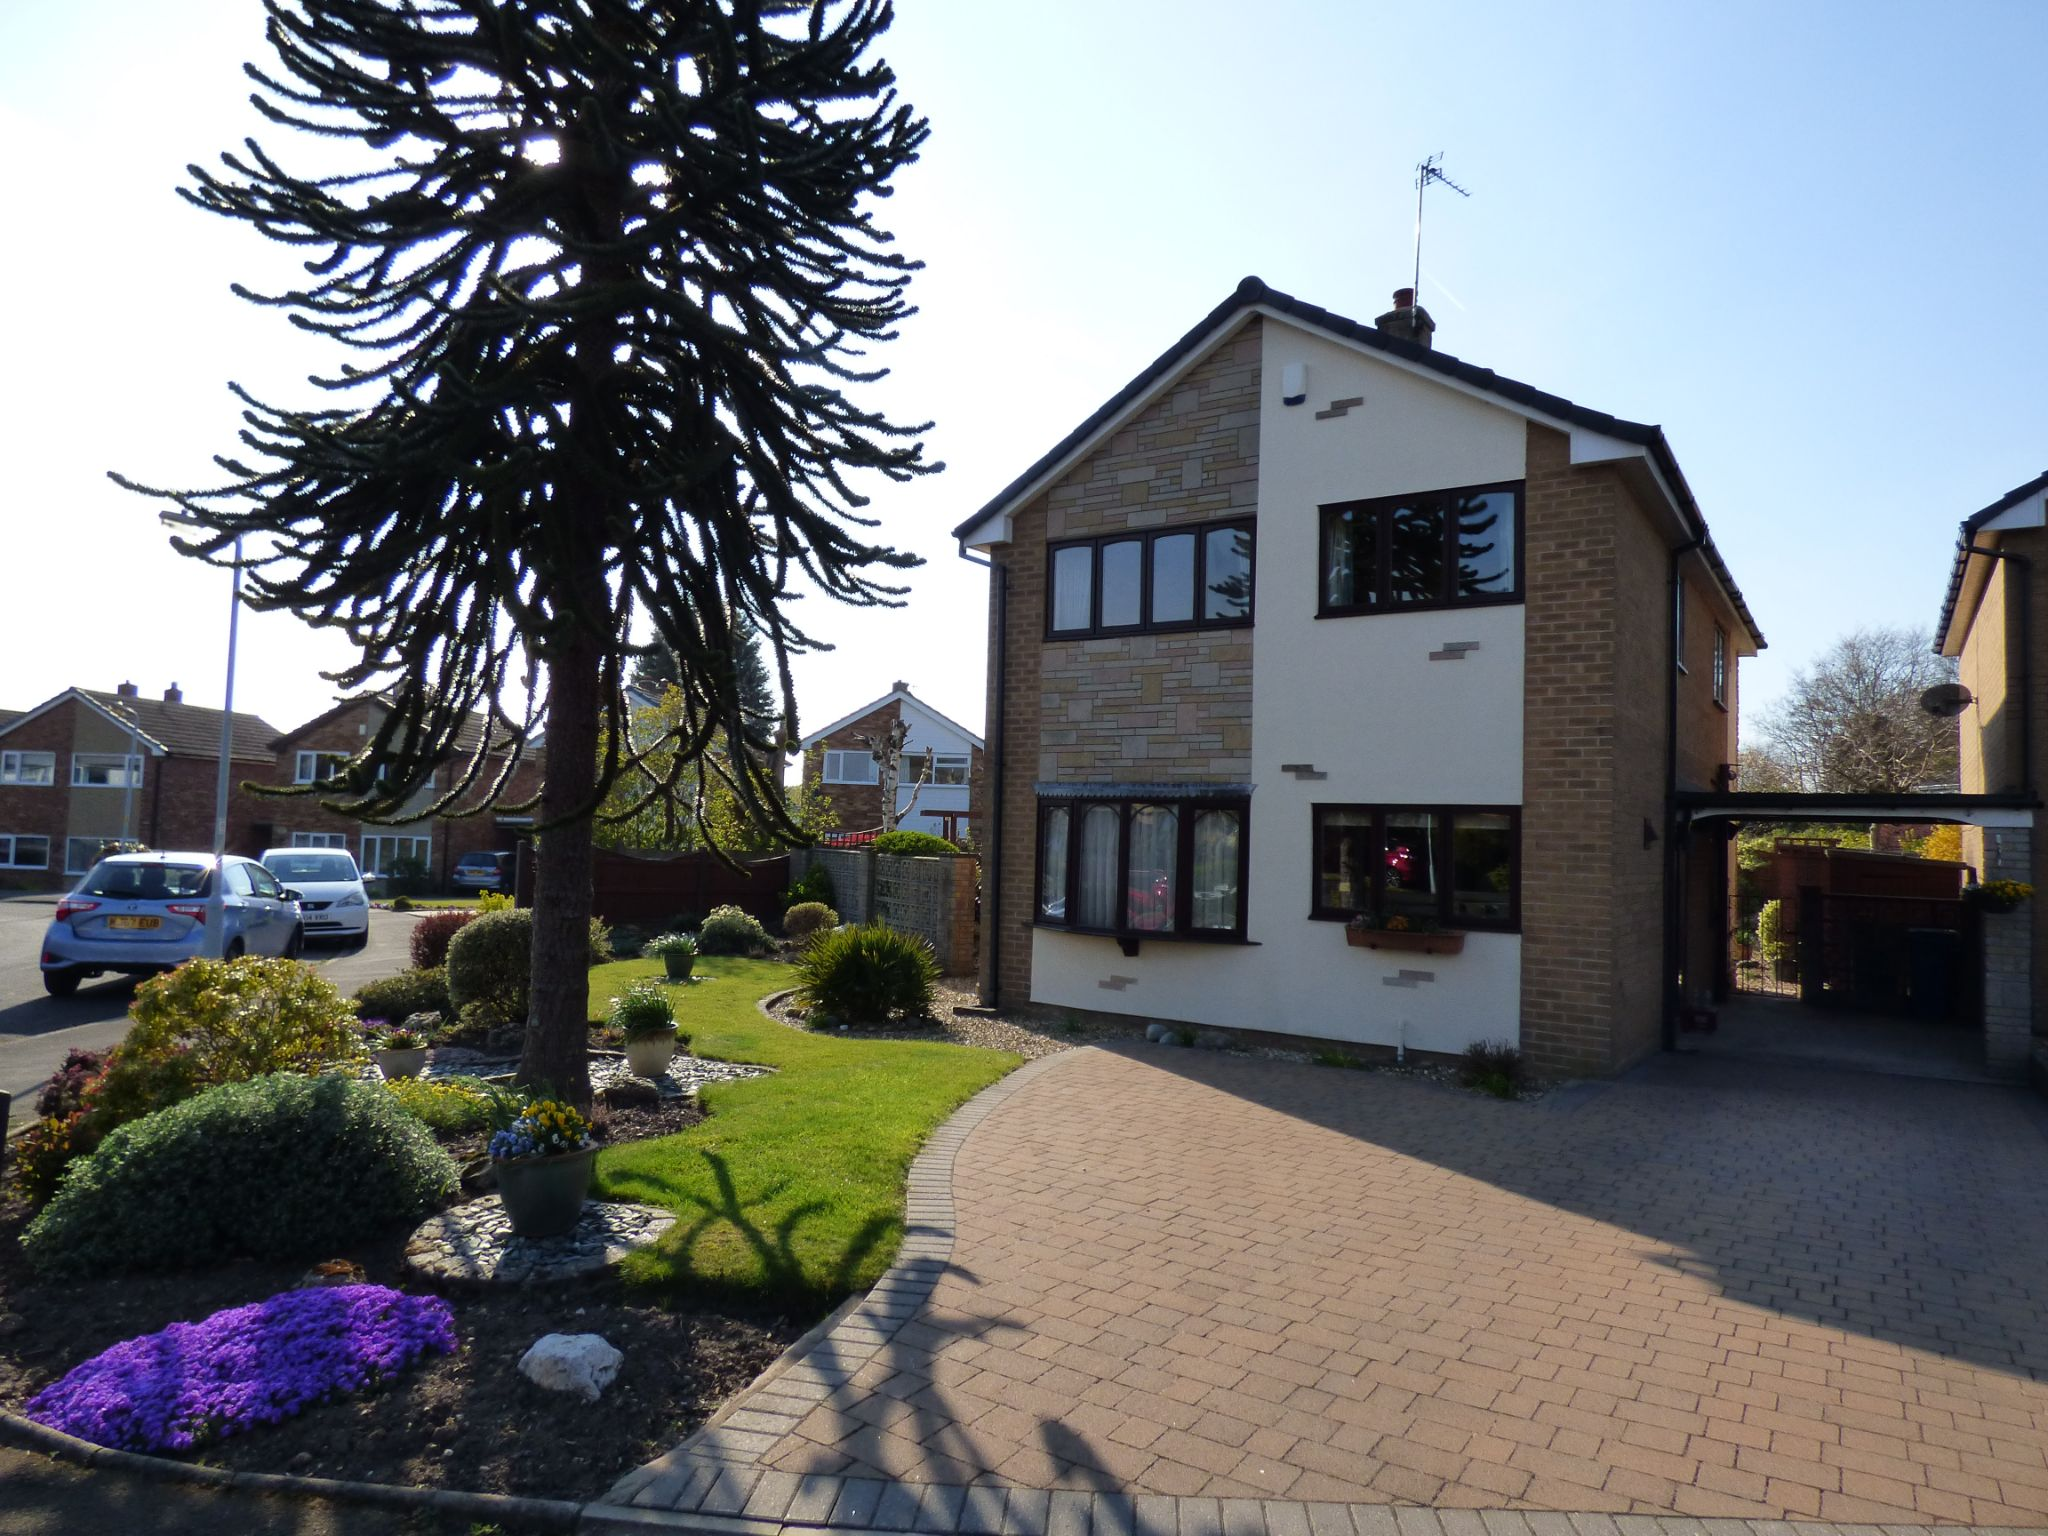 3 Bedroom Detached House For Sale - Front Driveway View